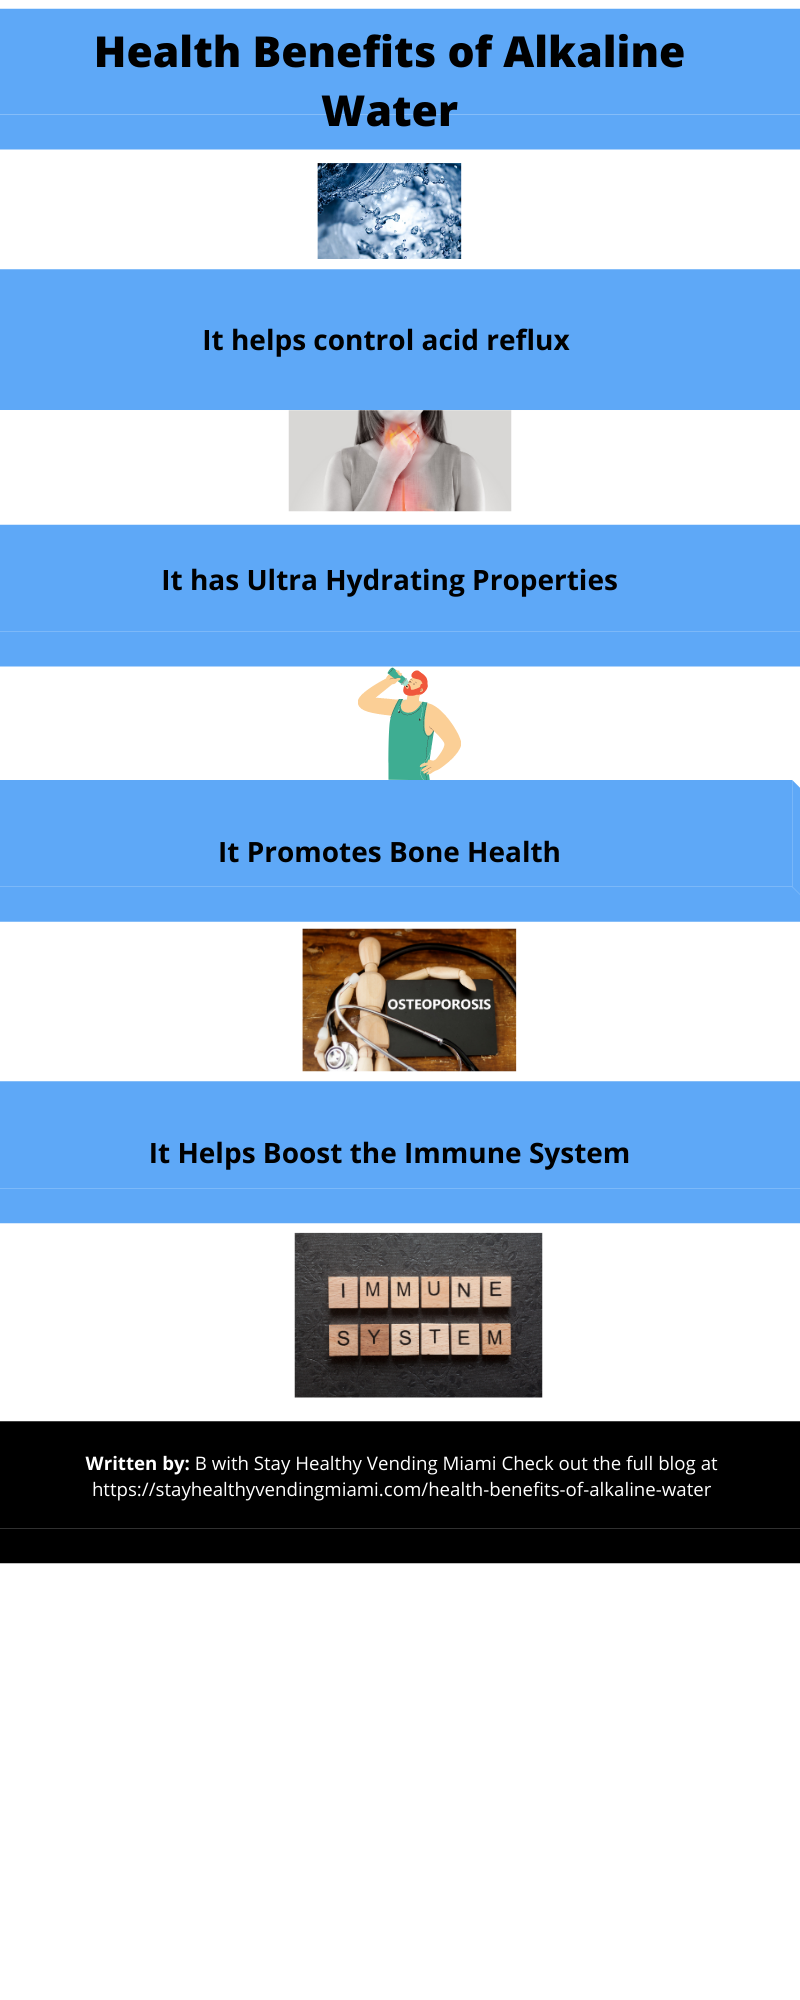 Infographic of the health benefits of alkaline water. Has pictures and the key points covered in the blog about alkaline water